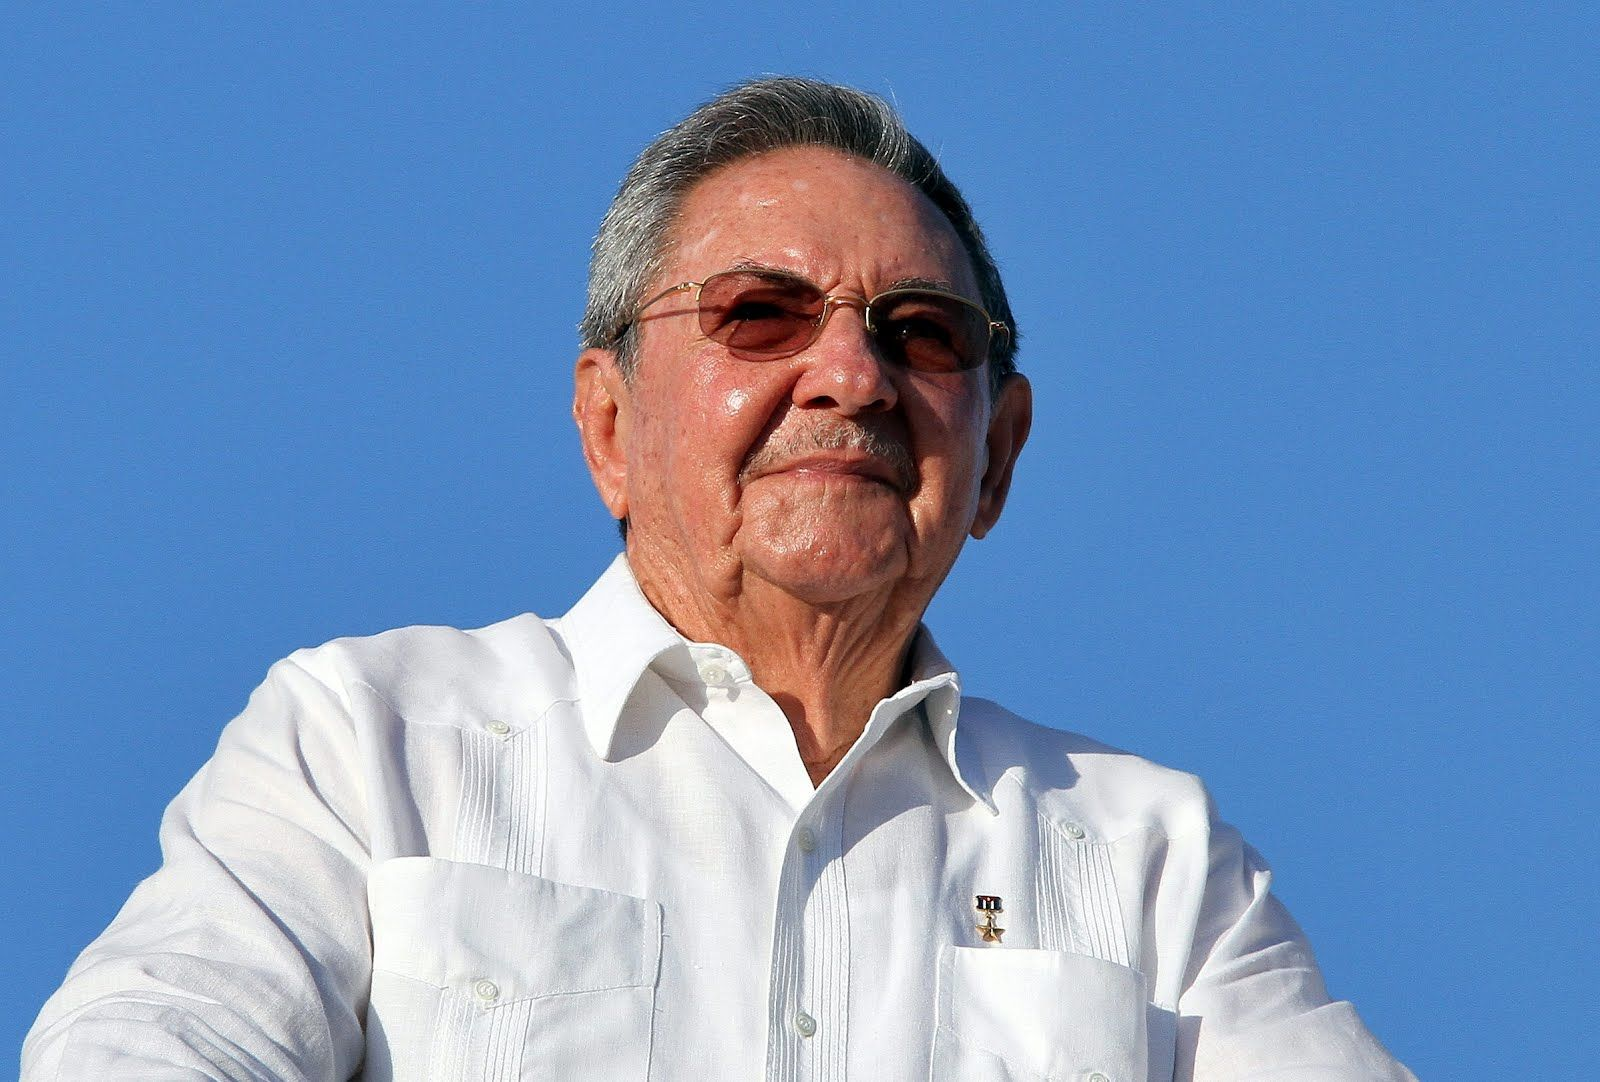 https://i0.wp.com/en.mercopress.com/data/cache/noticias/37747/0x0/raul-castro.jpg